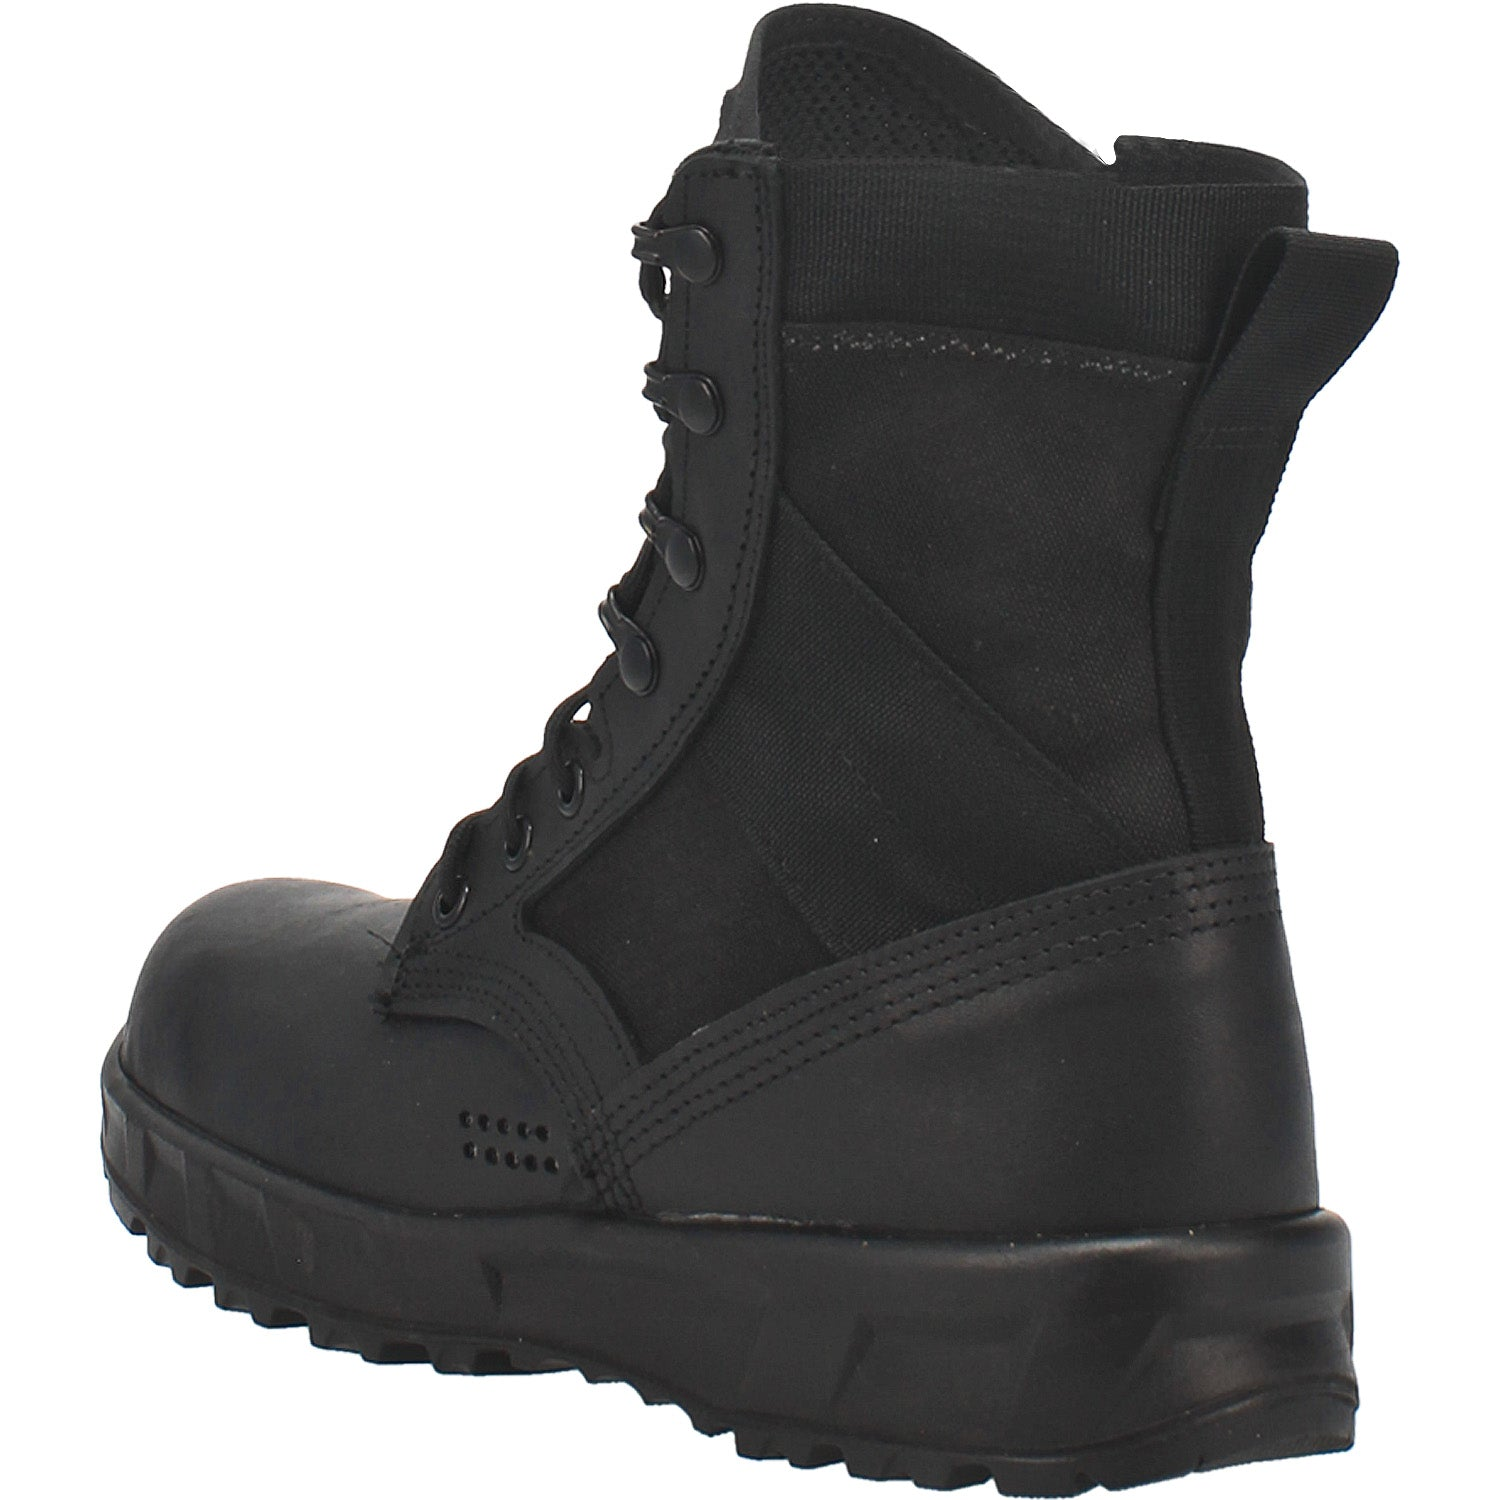 T2 Ultra Light Hot Weather Combat Boot 14940878569514